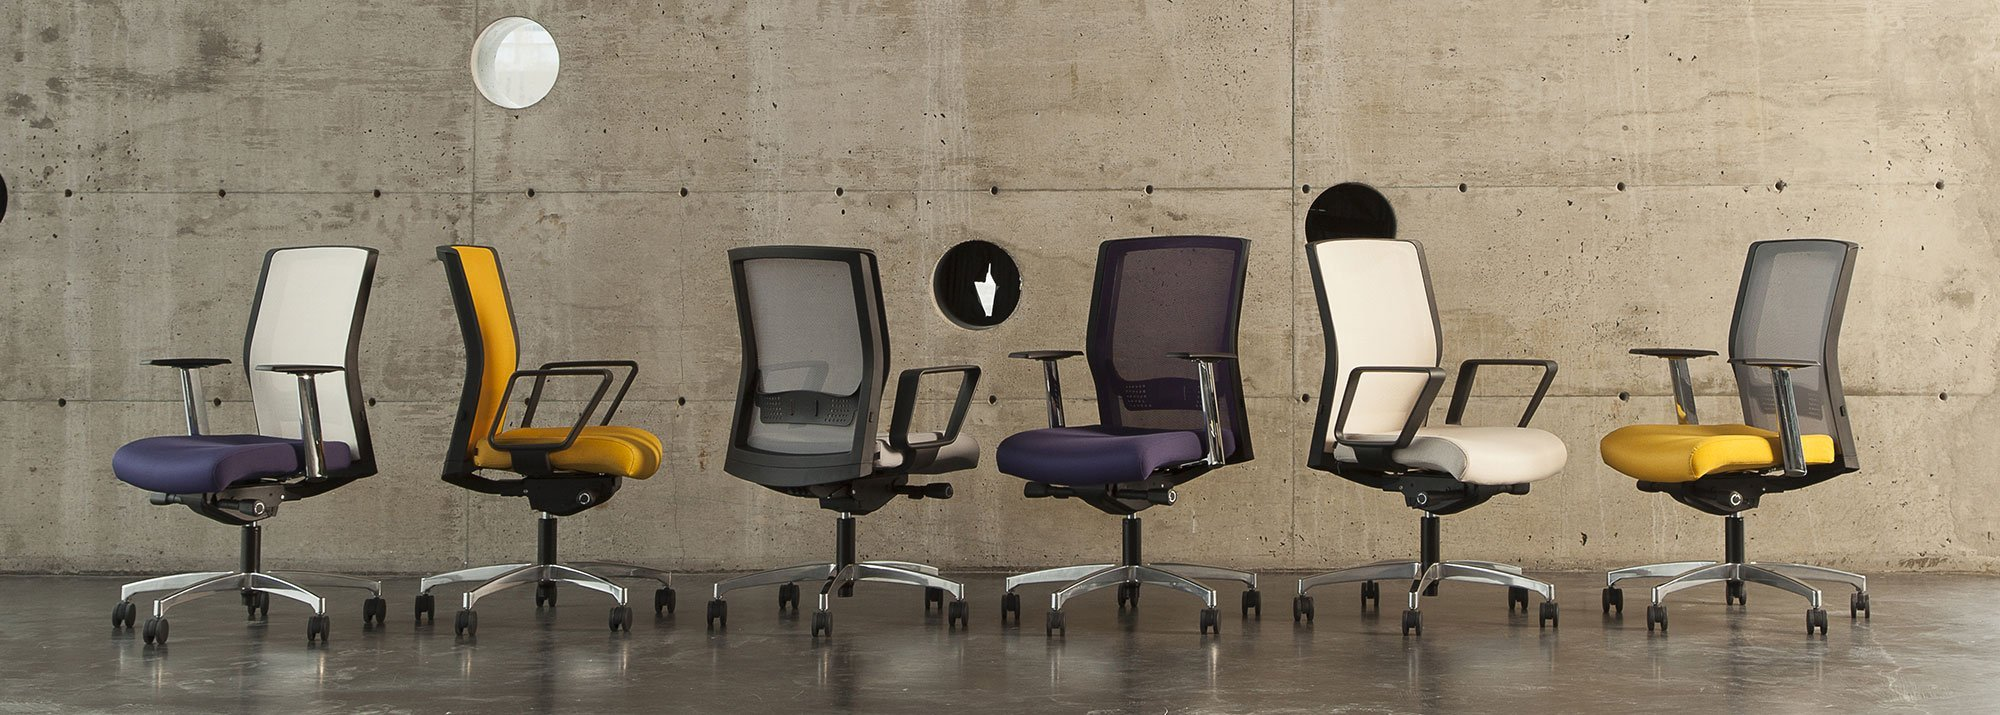 Modern desk chairs sugarland tx collaborative office Collaborative office interiors houston